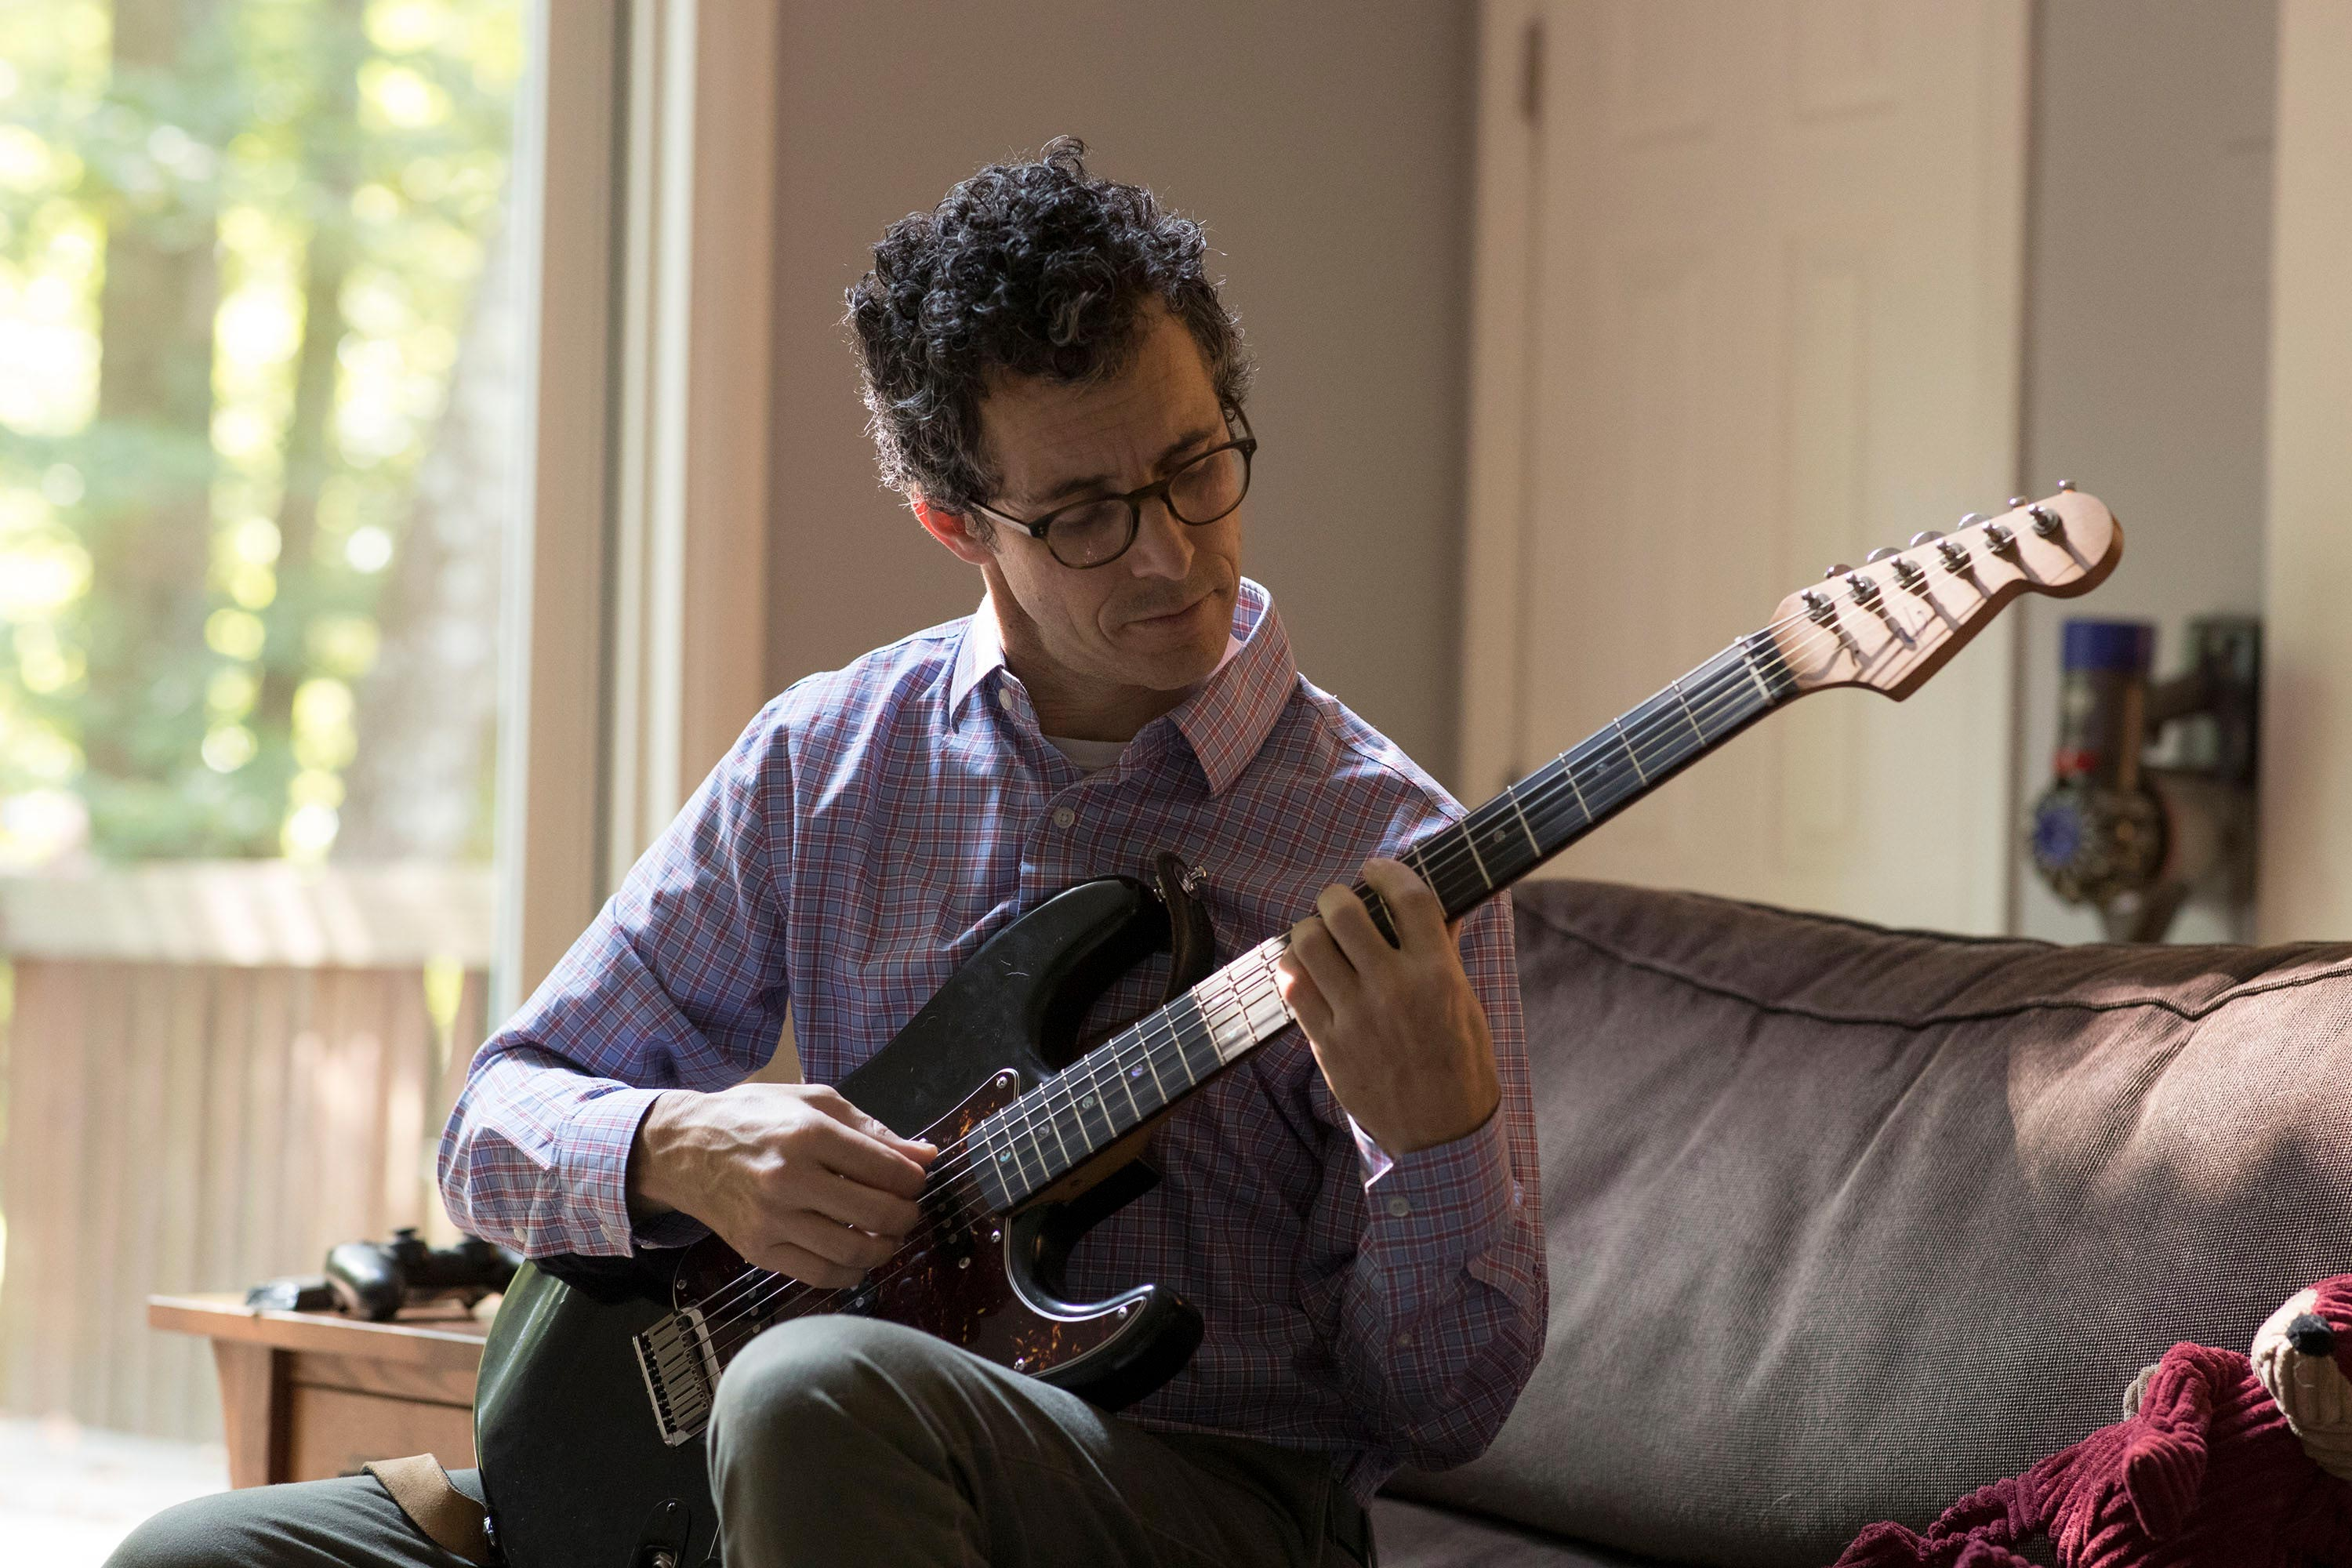 Efron has been playing the guitar since he was a young kid and has recently been tackling Bach violin sonatas on guitar.